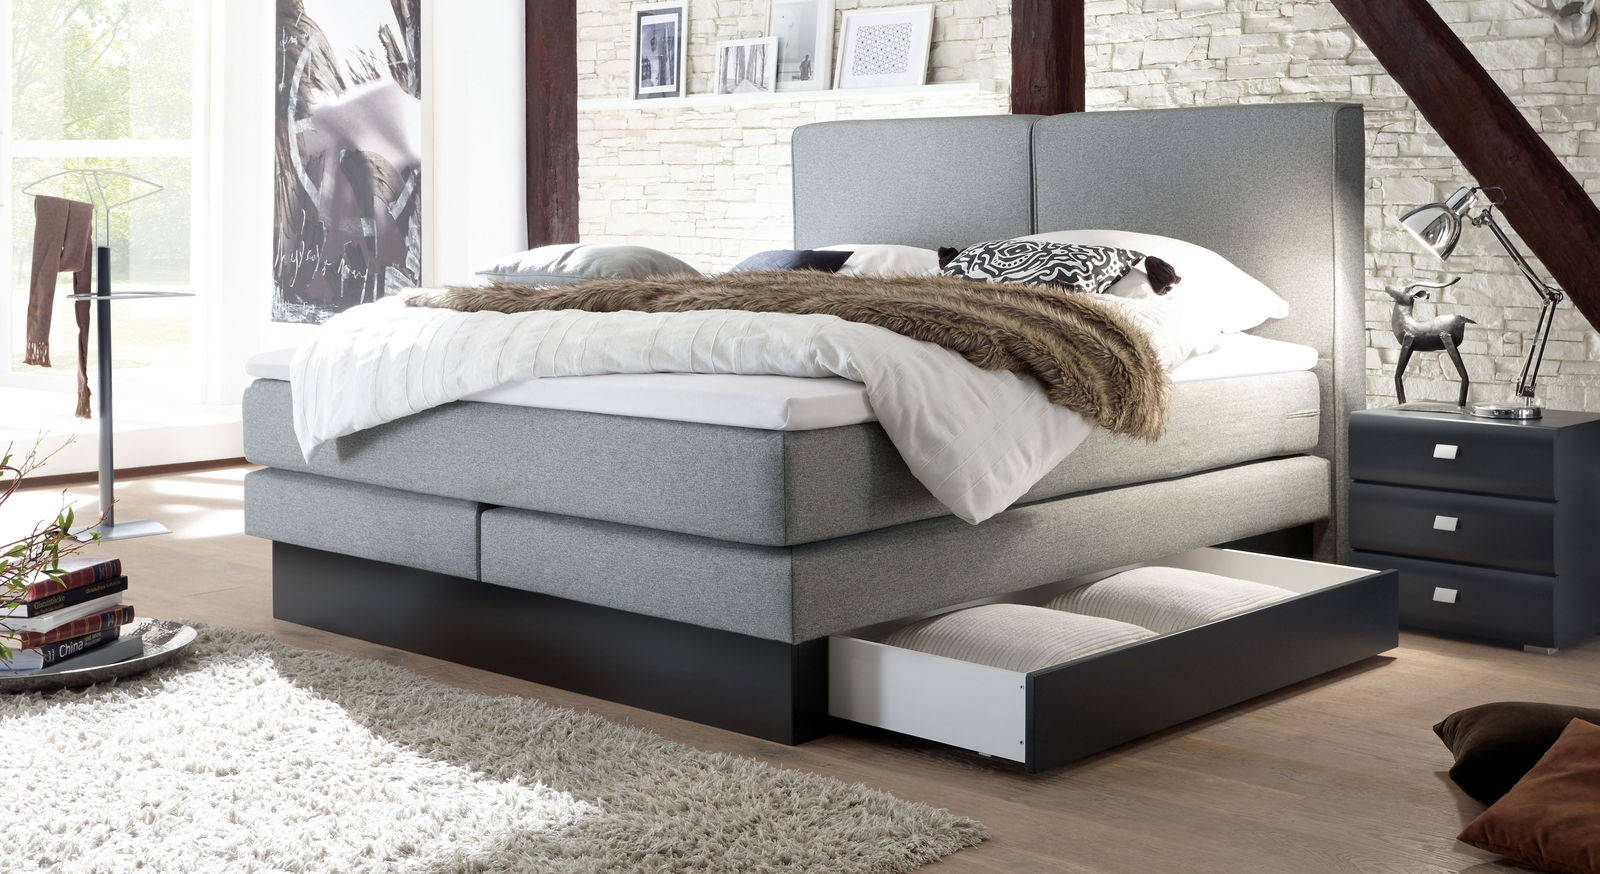 boxspringbett mit schubladen boxspringbett holz mit. Black Bedroom Furniture Sets. Home Design Ideas